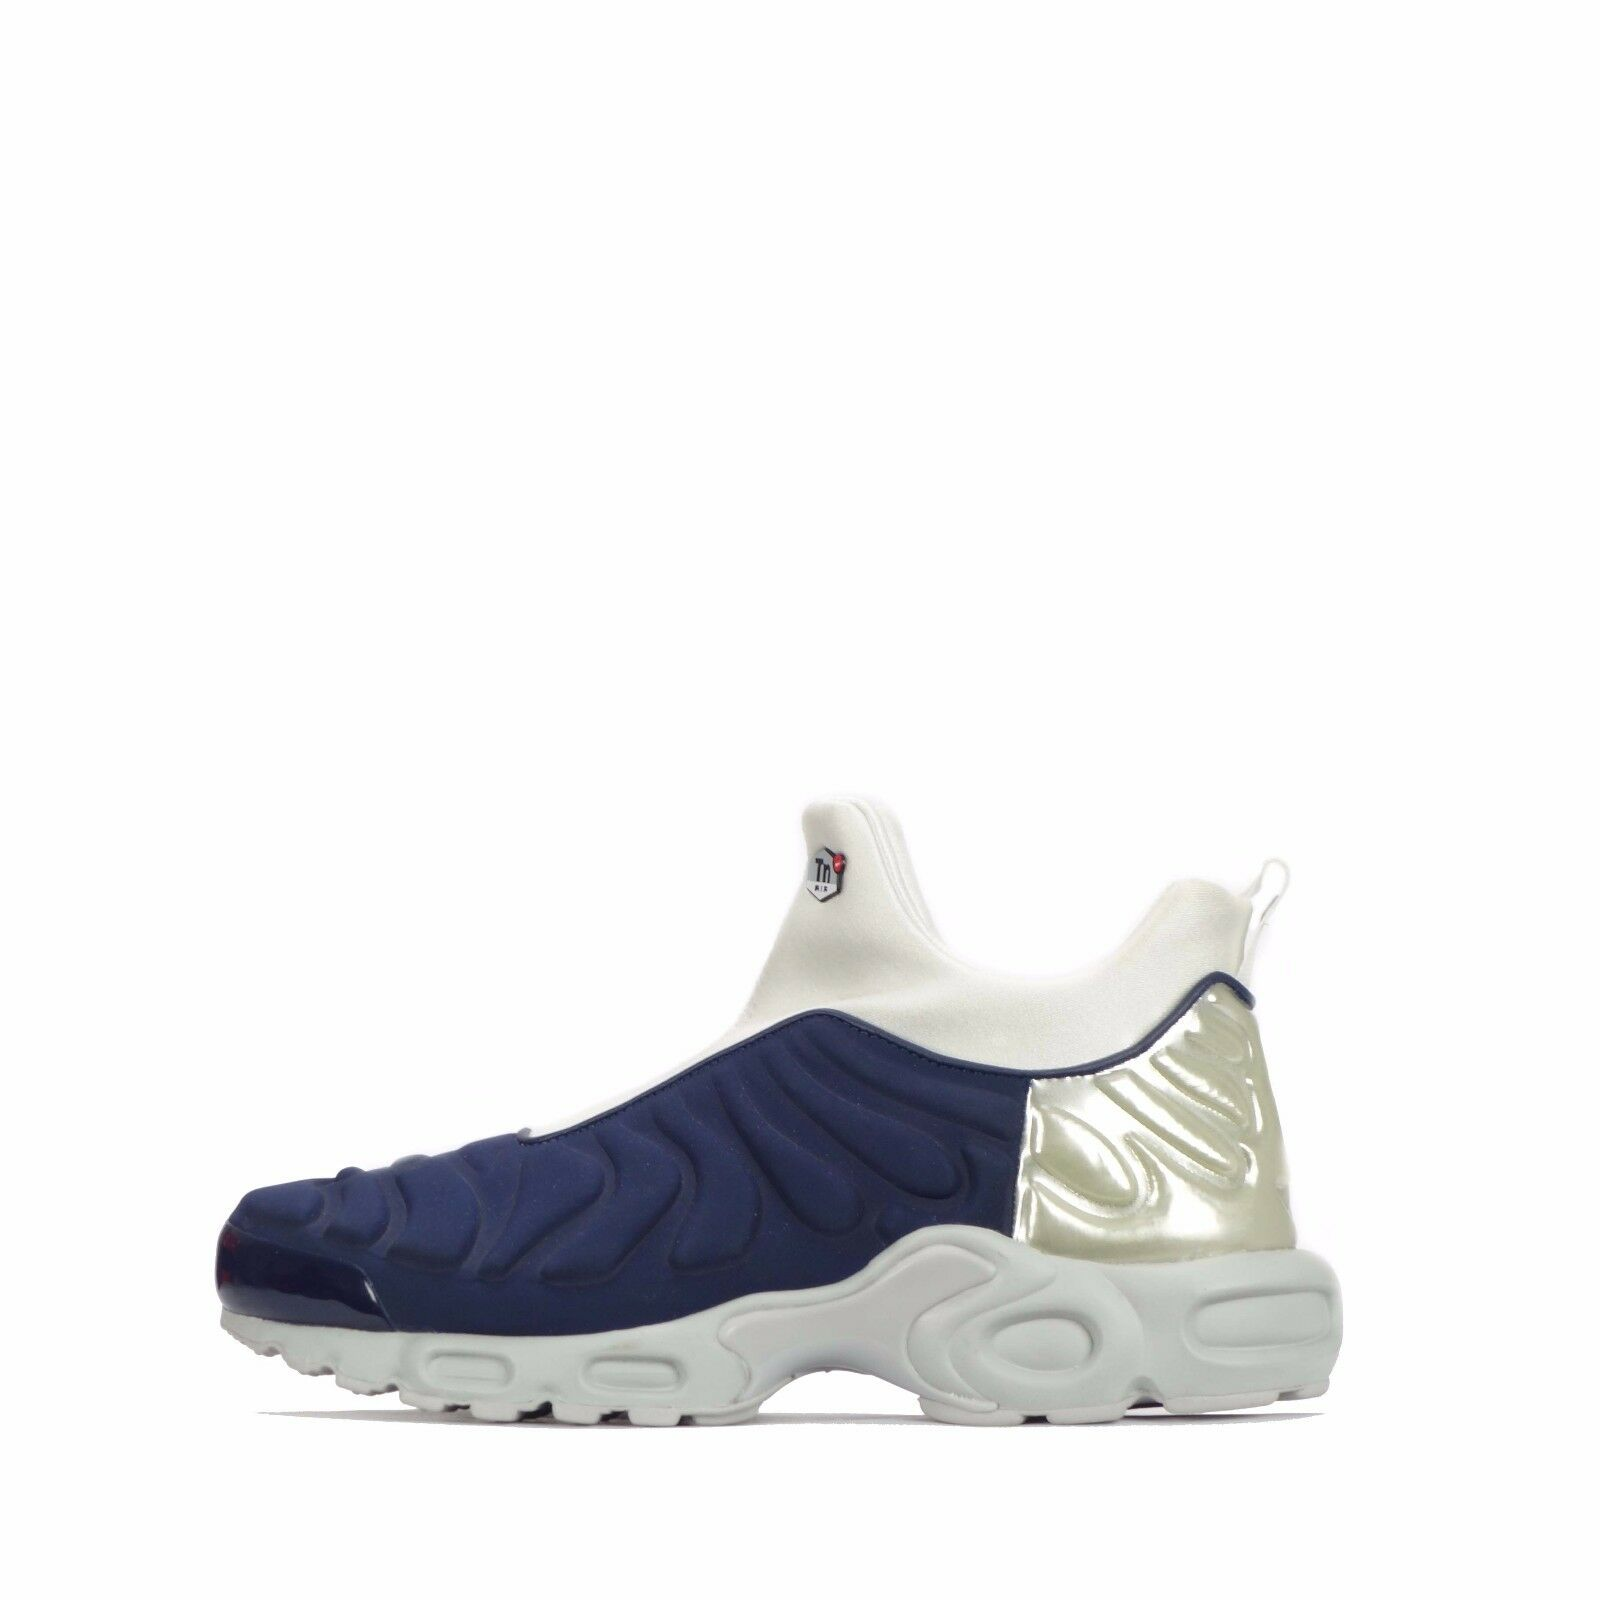 Nike Air Max Plus Slip On TN Tuned SP Women's Shoes Midnight Navy.Silver